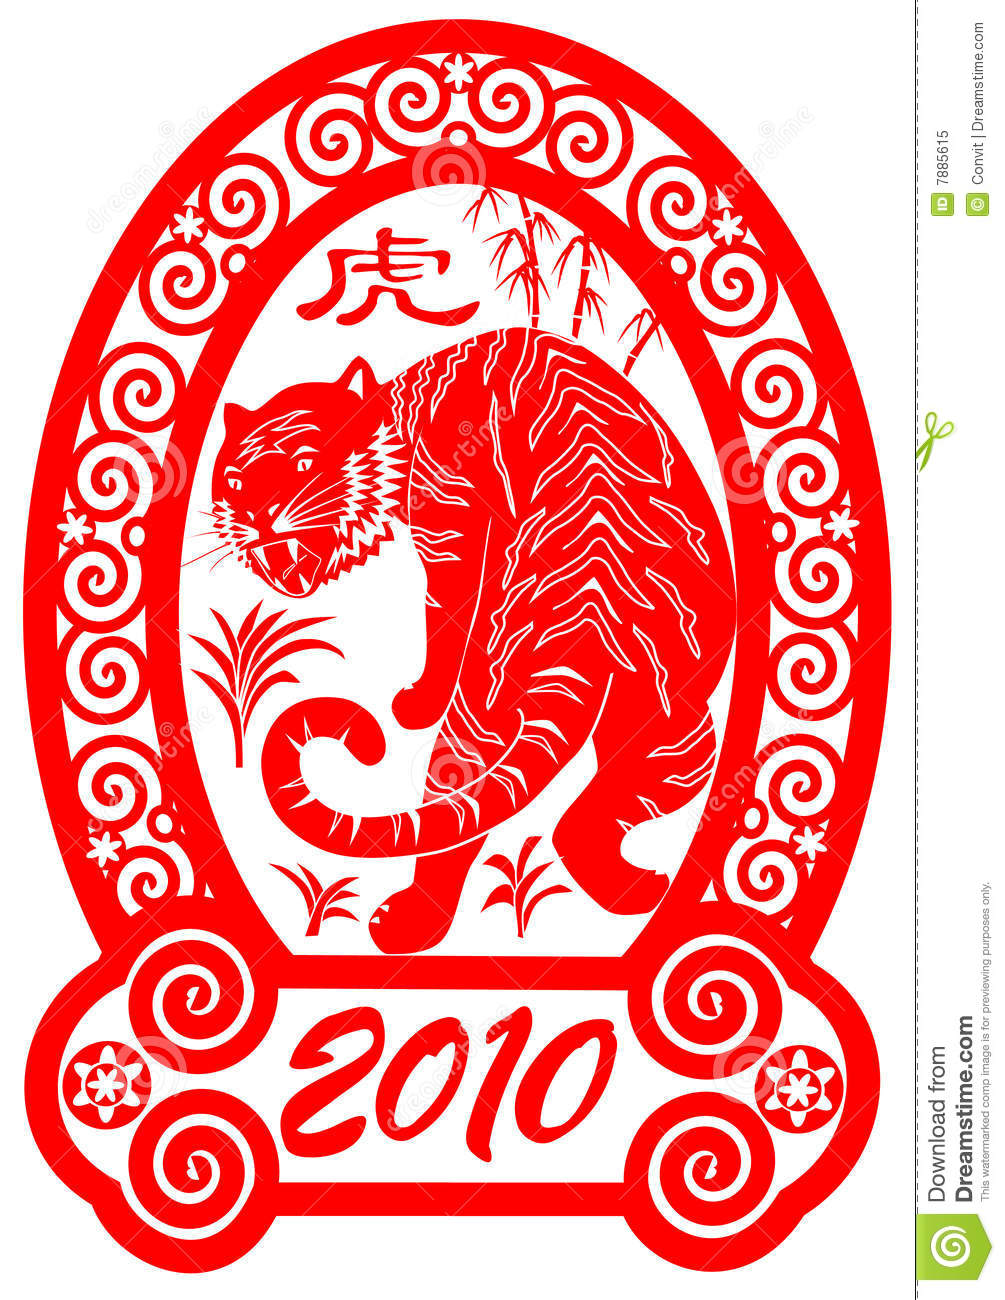 Chinese year of the tiger 2010 royalty free stock photo image